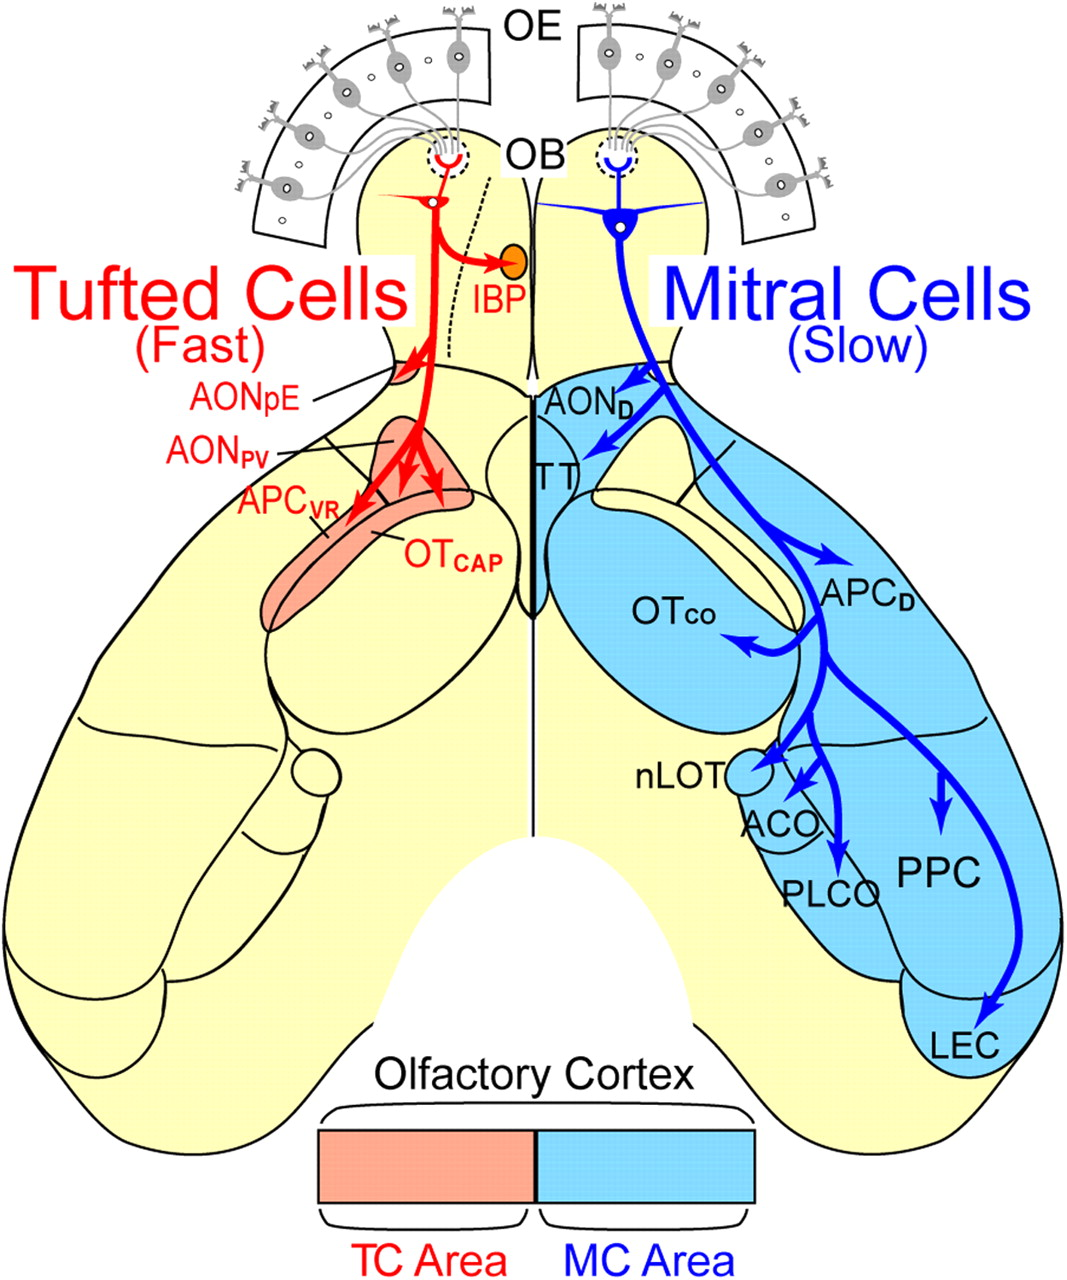 Parallel Mitral and Tufted Cell Pathways Route Distinct Odor ...